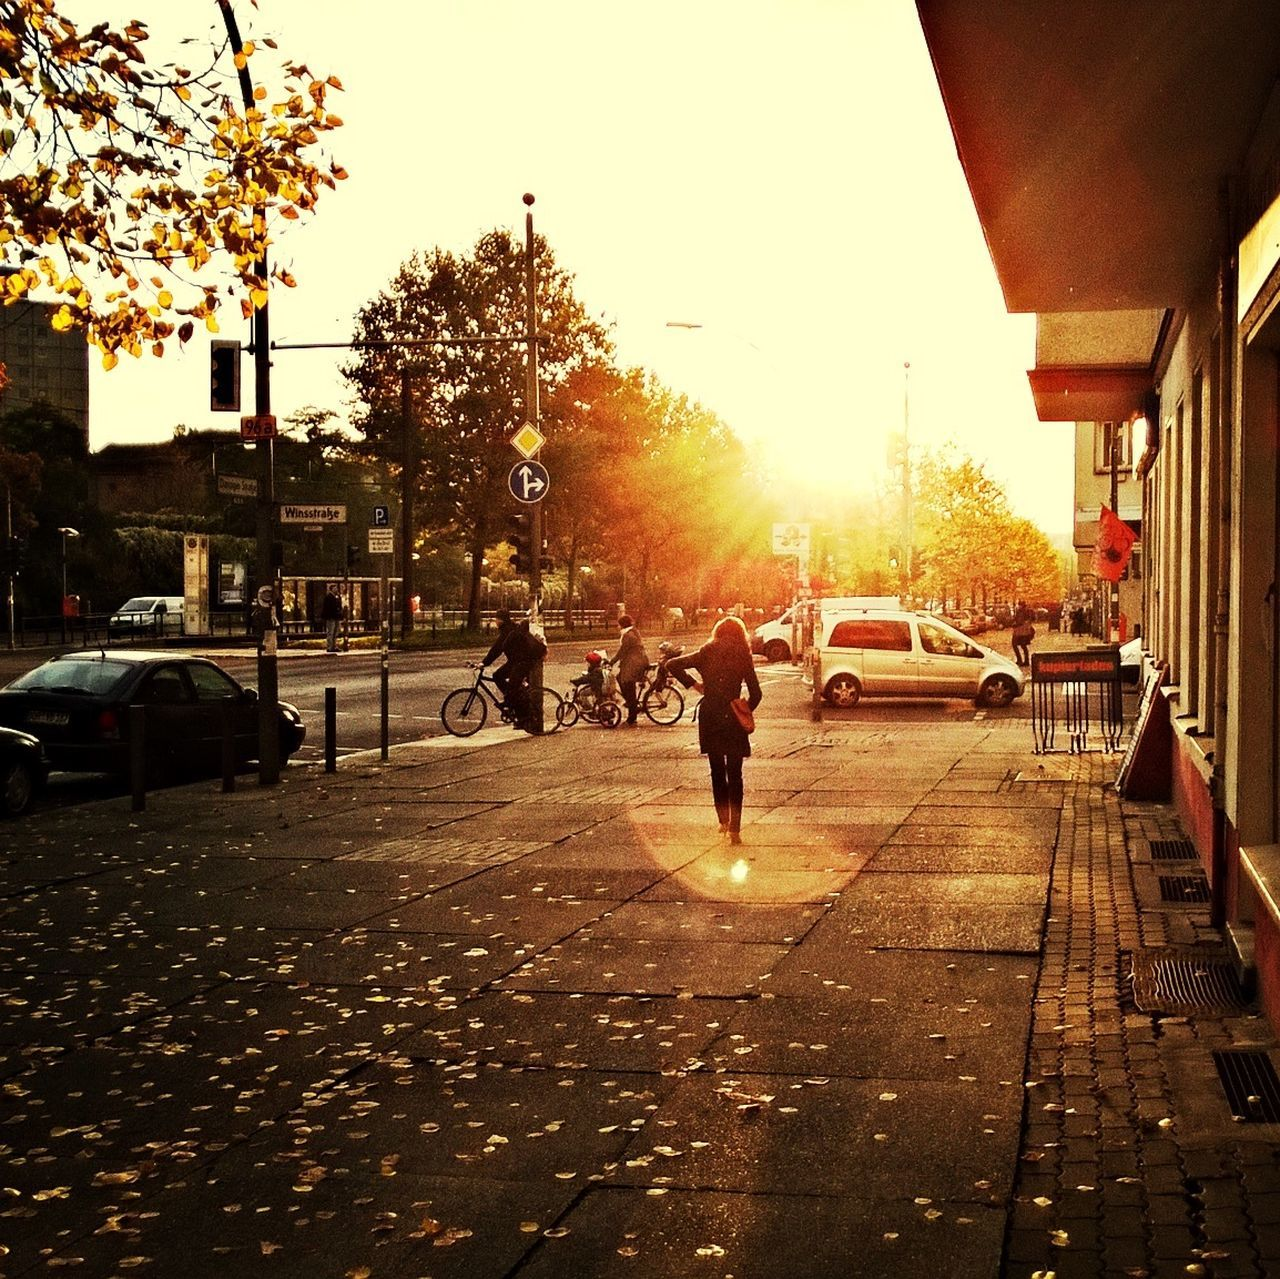 People On Sidewalk By City Street During Sunrise